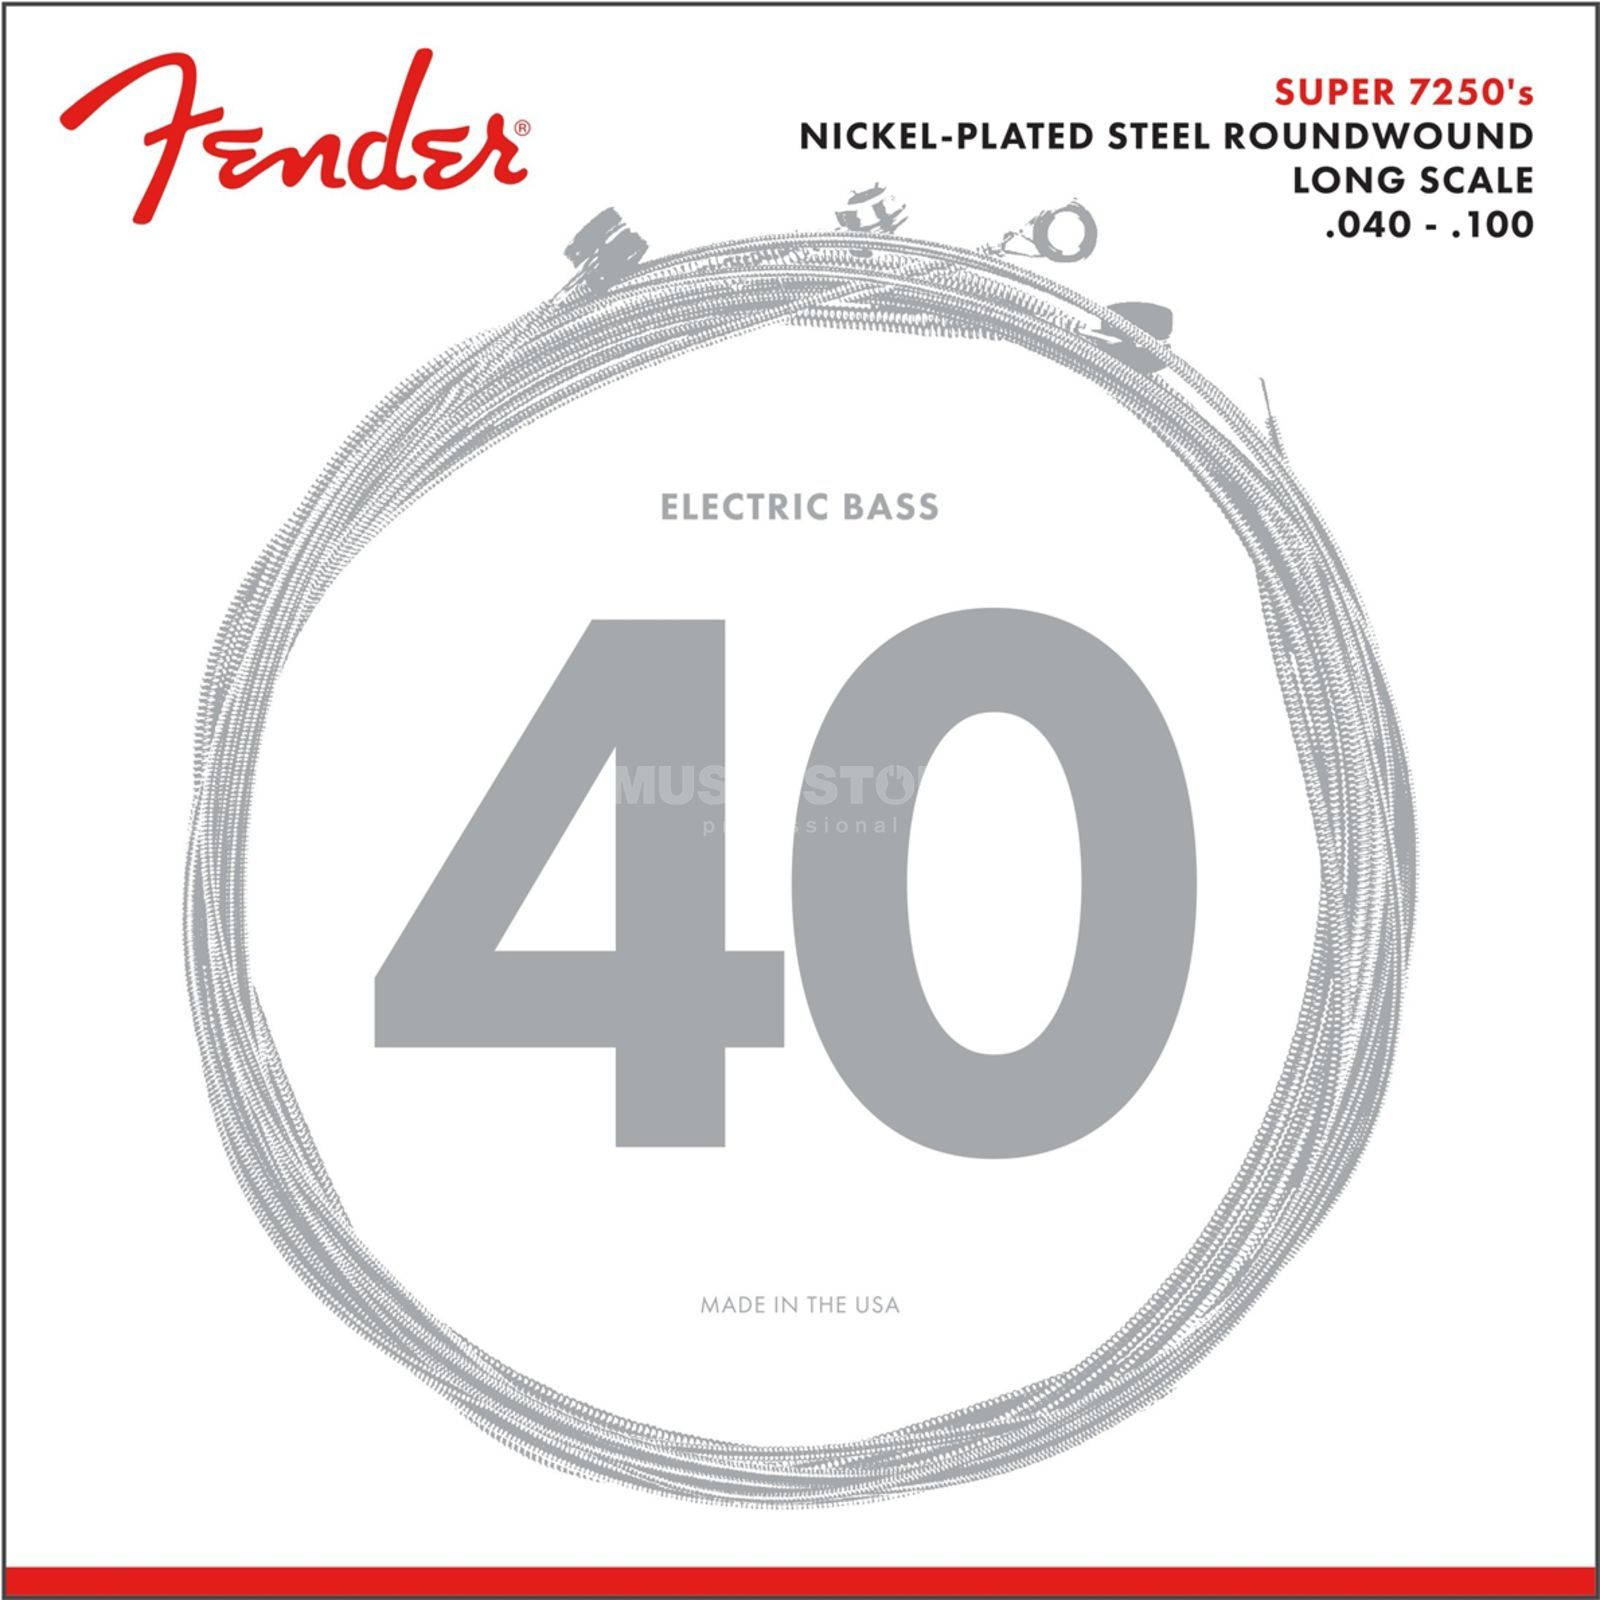 Fender Strings Super 7250 L 40-100 Nickel Pl., Roundw. Longscale Image du produit